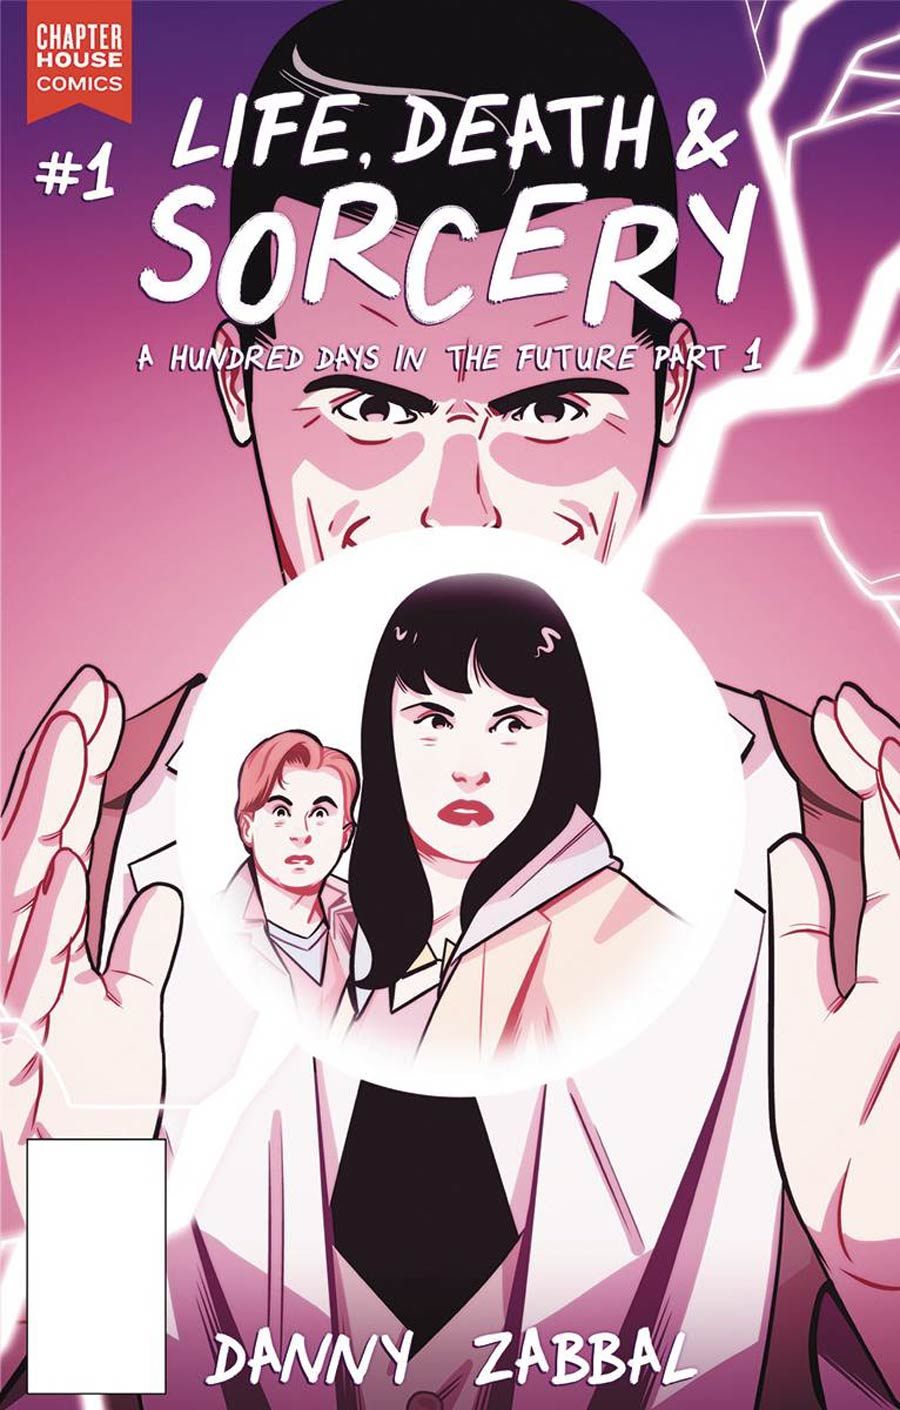 Life Death and Sorcery - Danny Zabbal (W, A) • Chapterhouse Comics